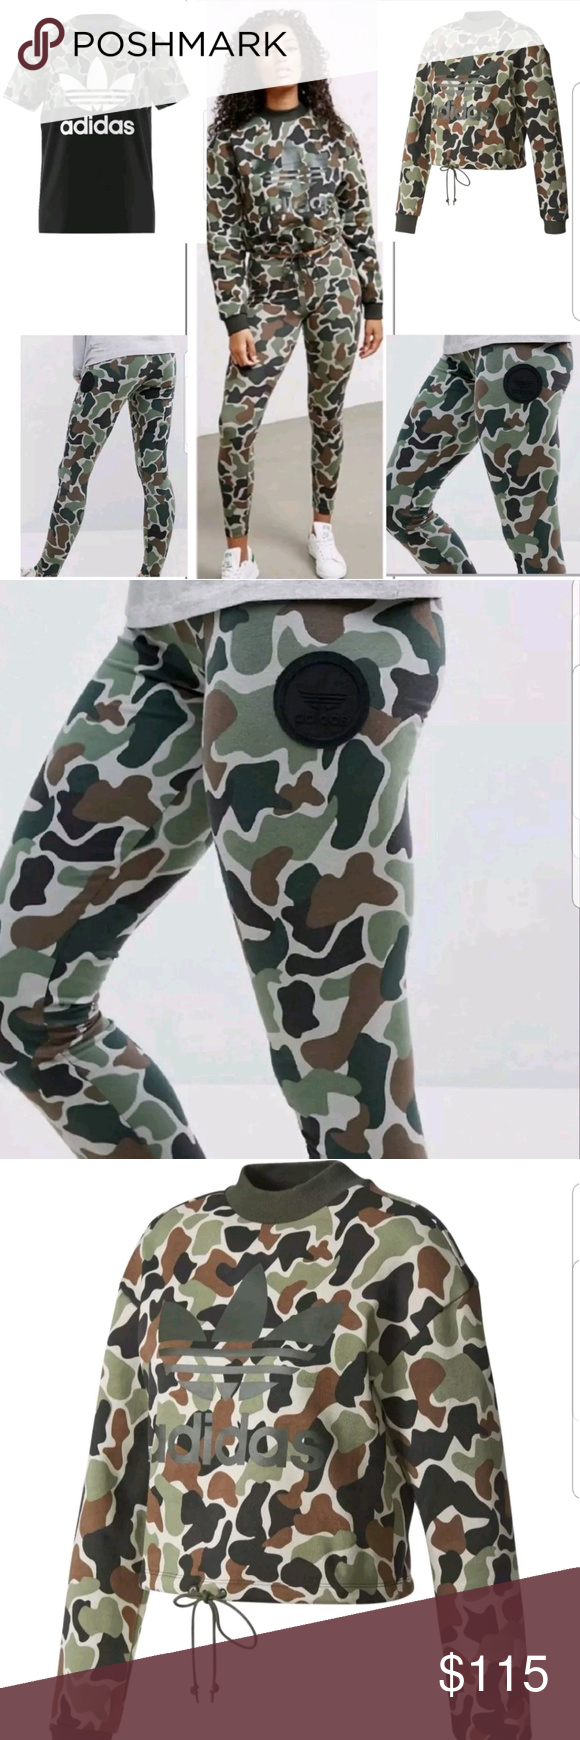 Adidas Originals Bundle Of 3 Camouflage Outfits With Leggings Crewneck Outfit Womens Sweatshirts Fashion [ 1740 x 580 Pixel ]